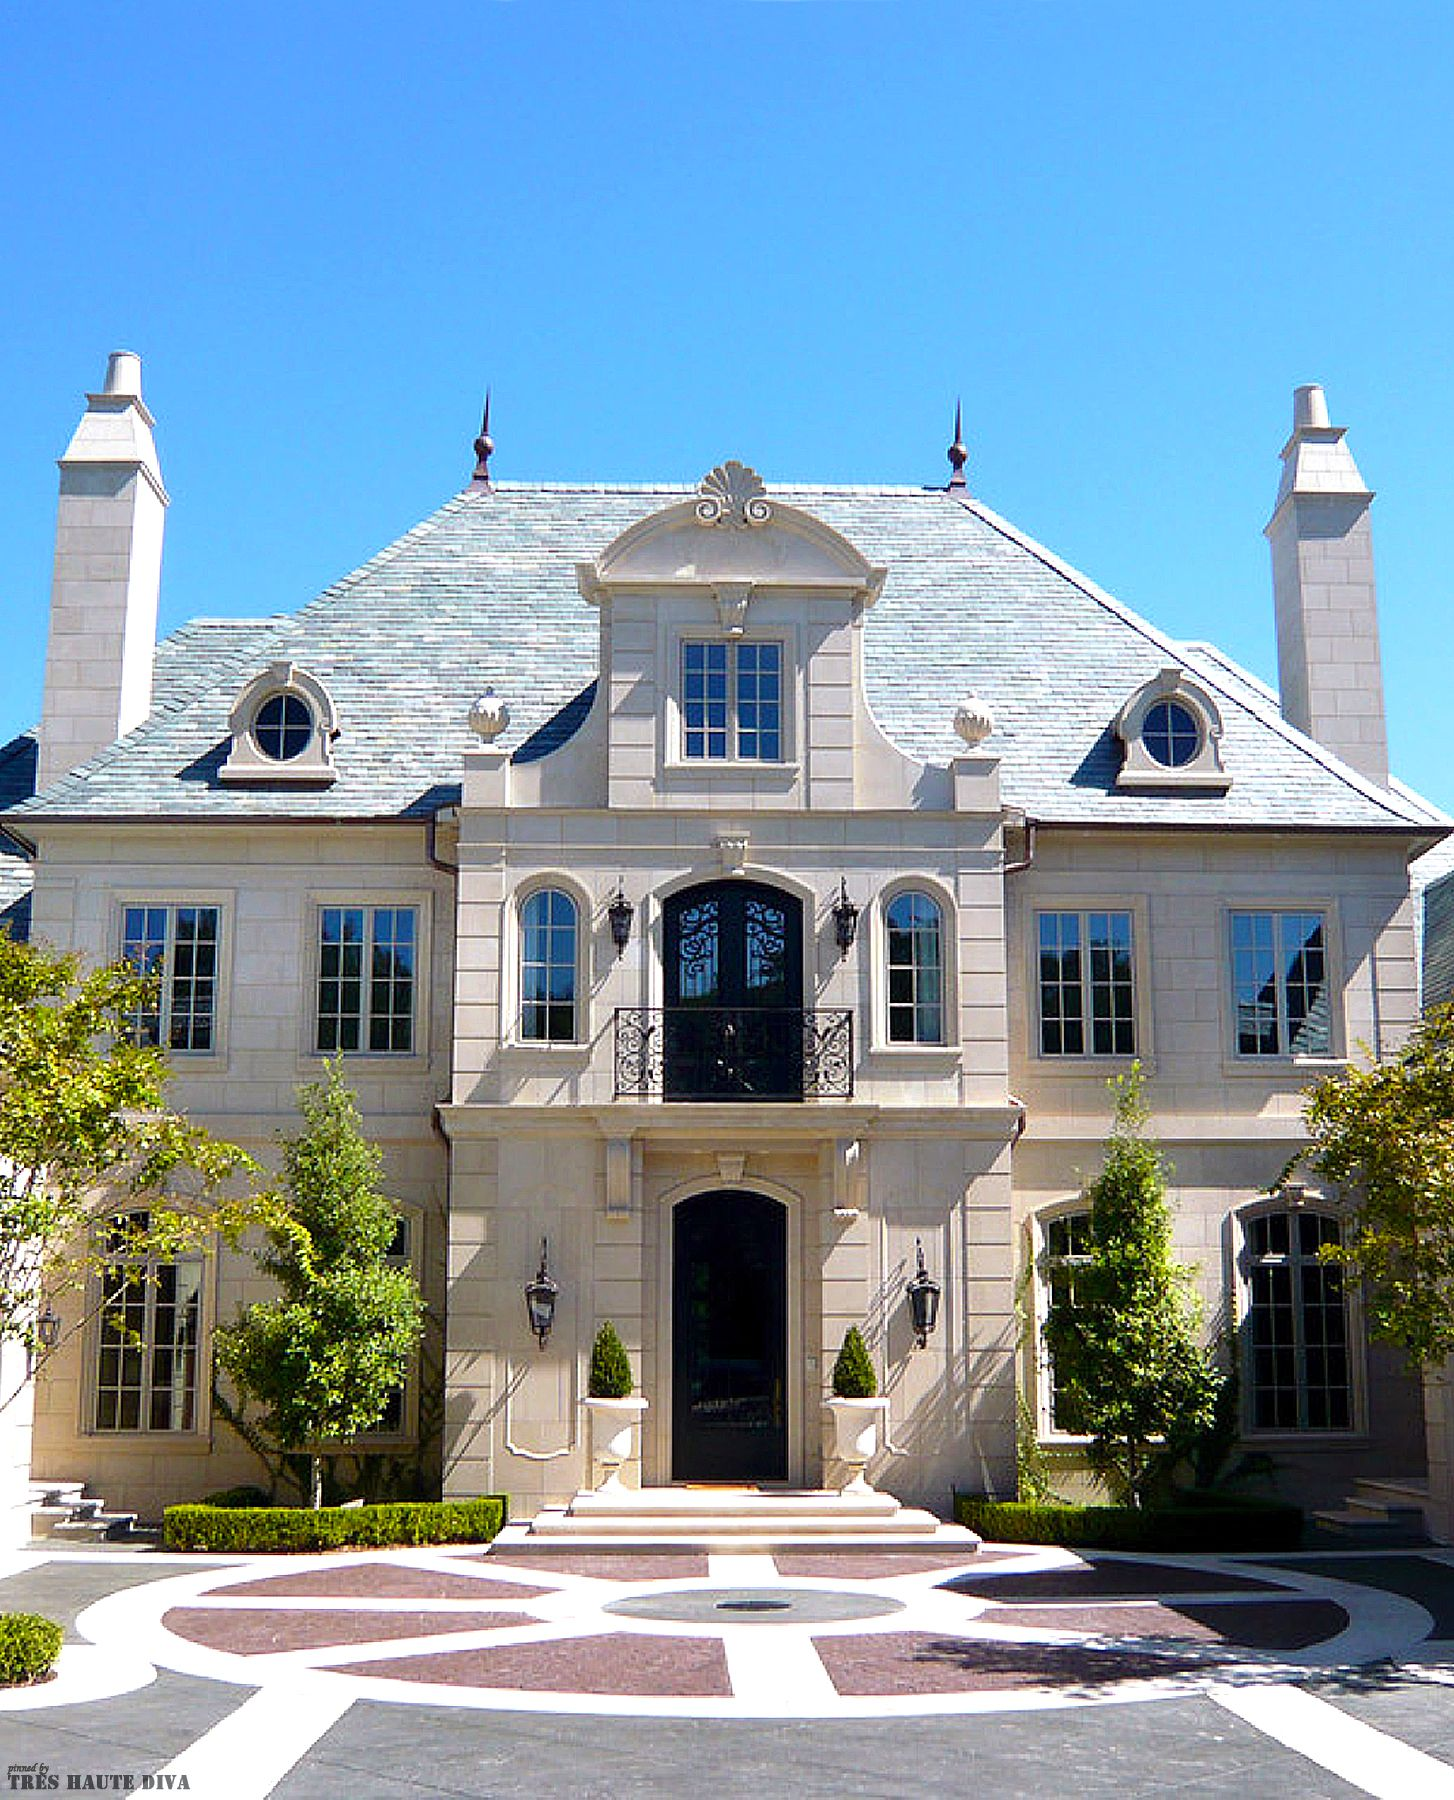 16 wonderful french chateau architecture house plans - HD 1454×1800